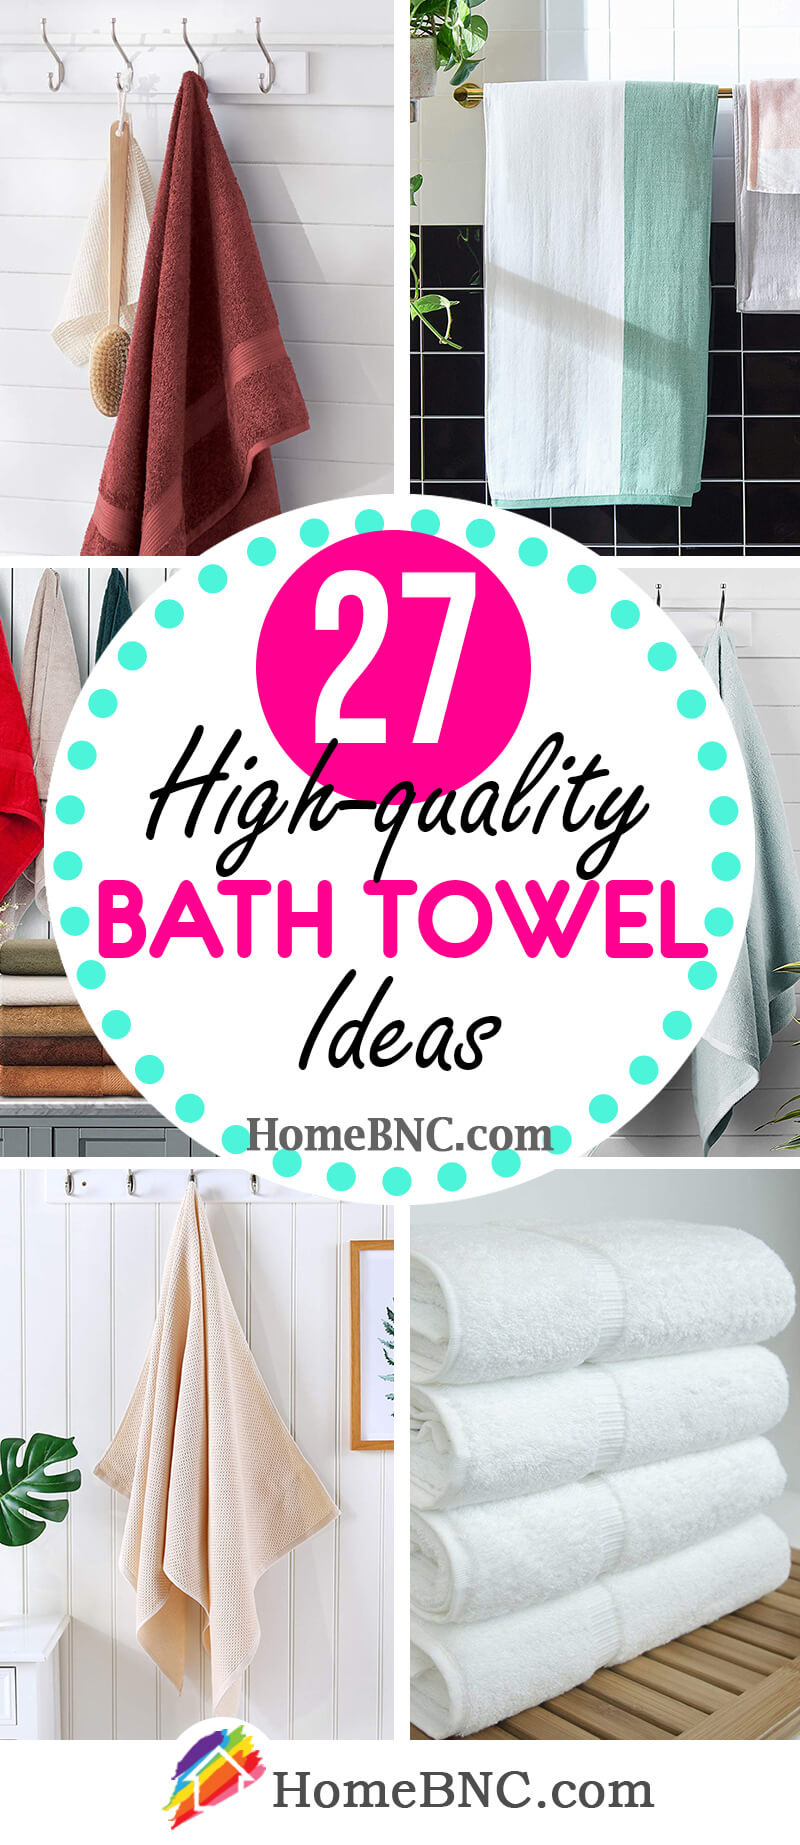 best bath towels on pinterest share homebnc